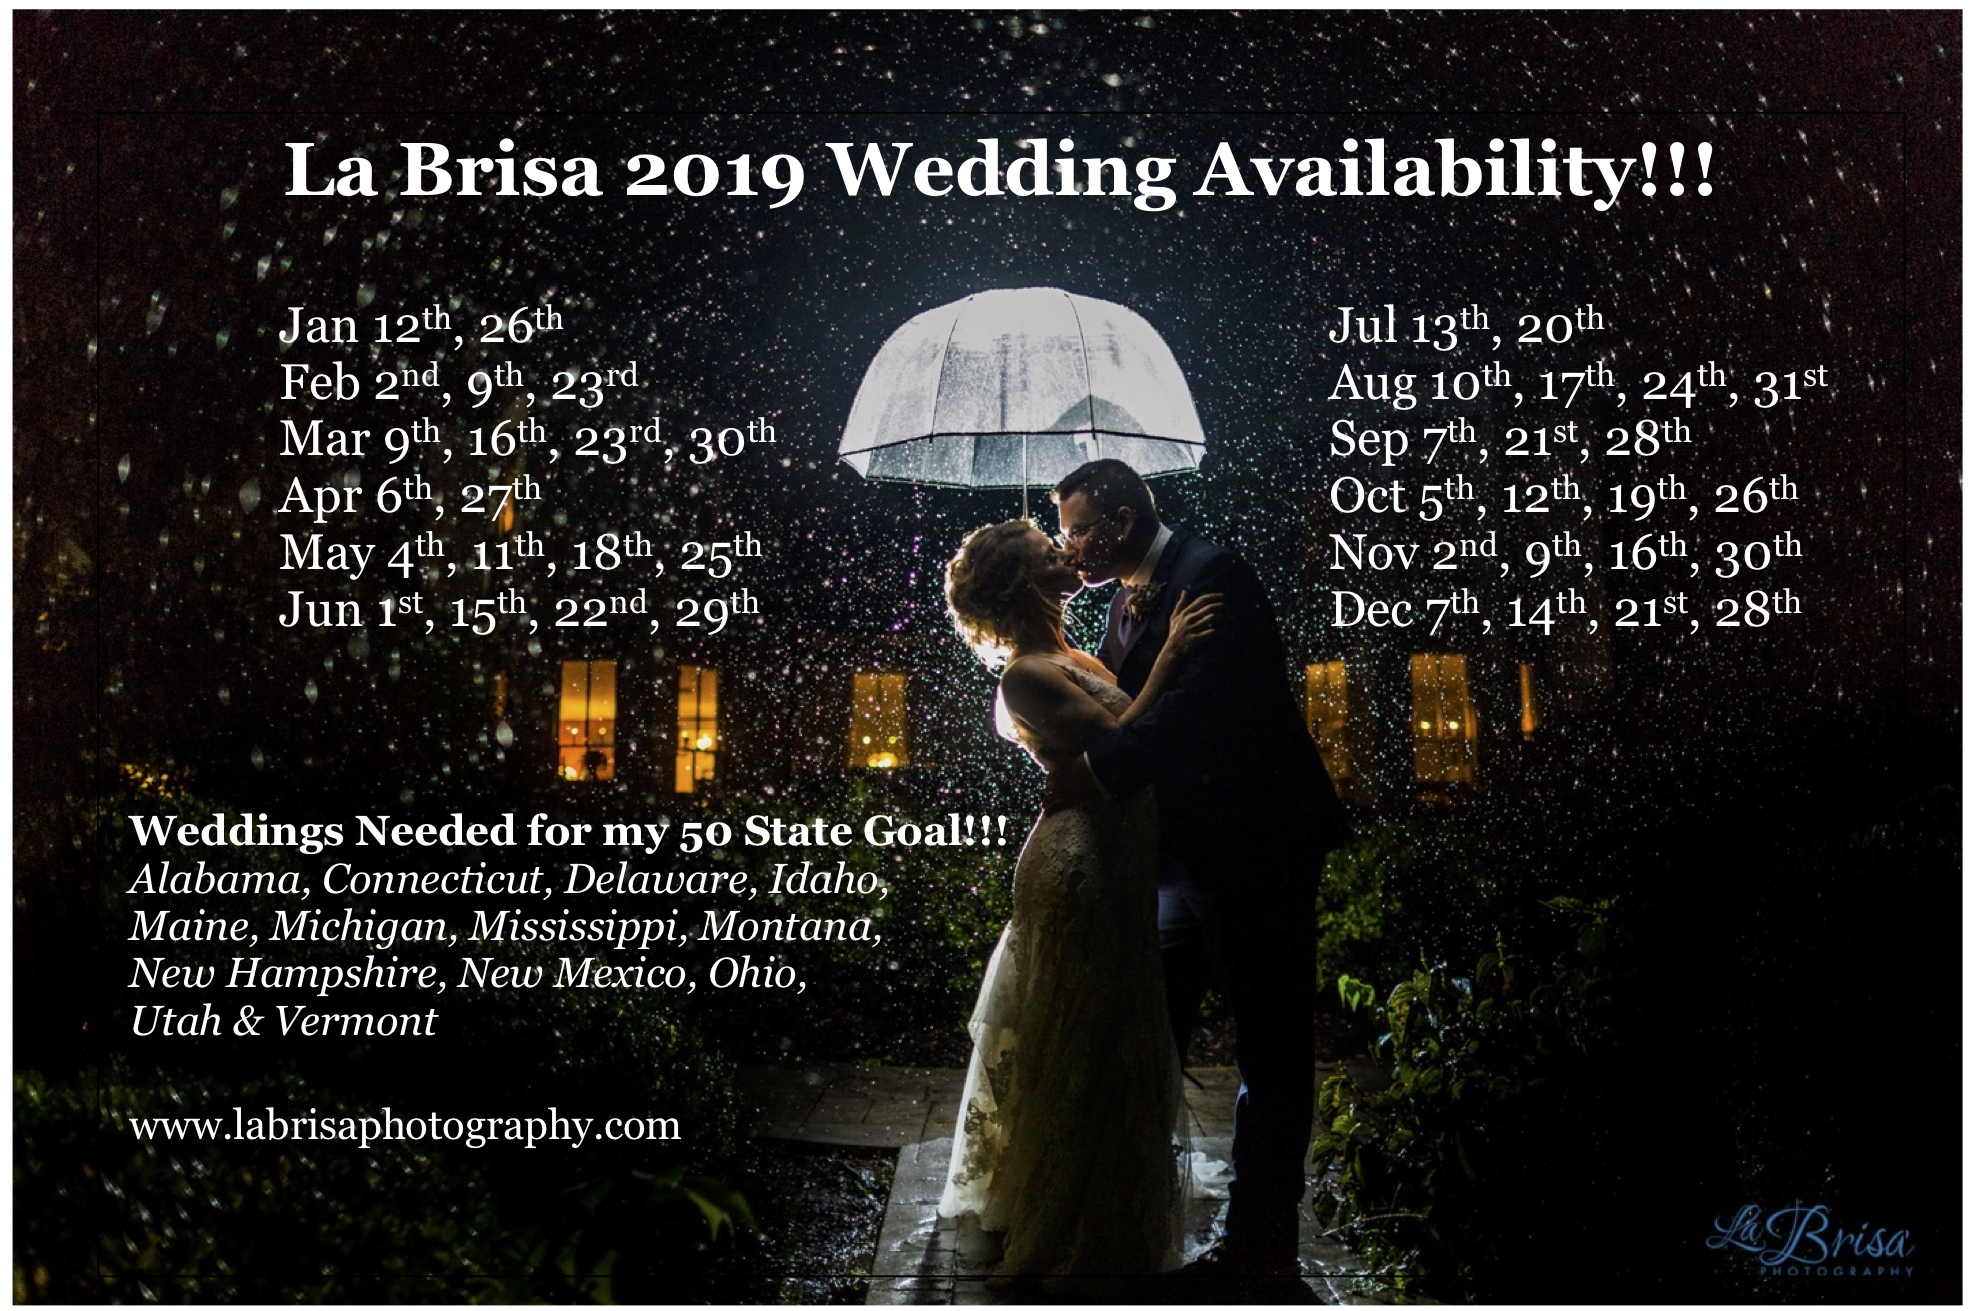 2019 Wedding Availbility